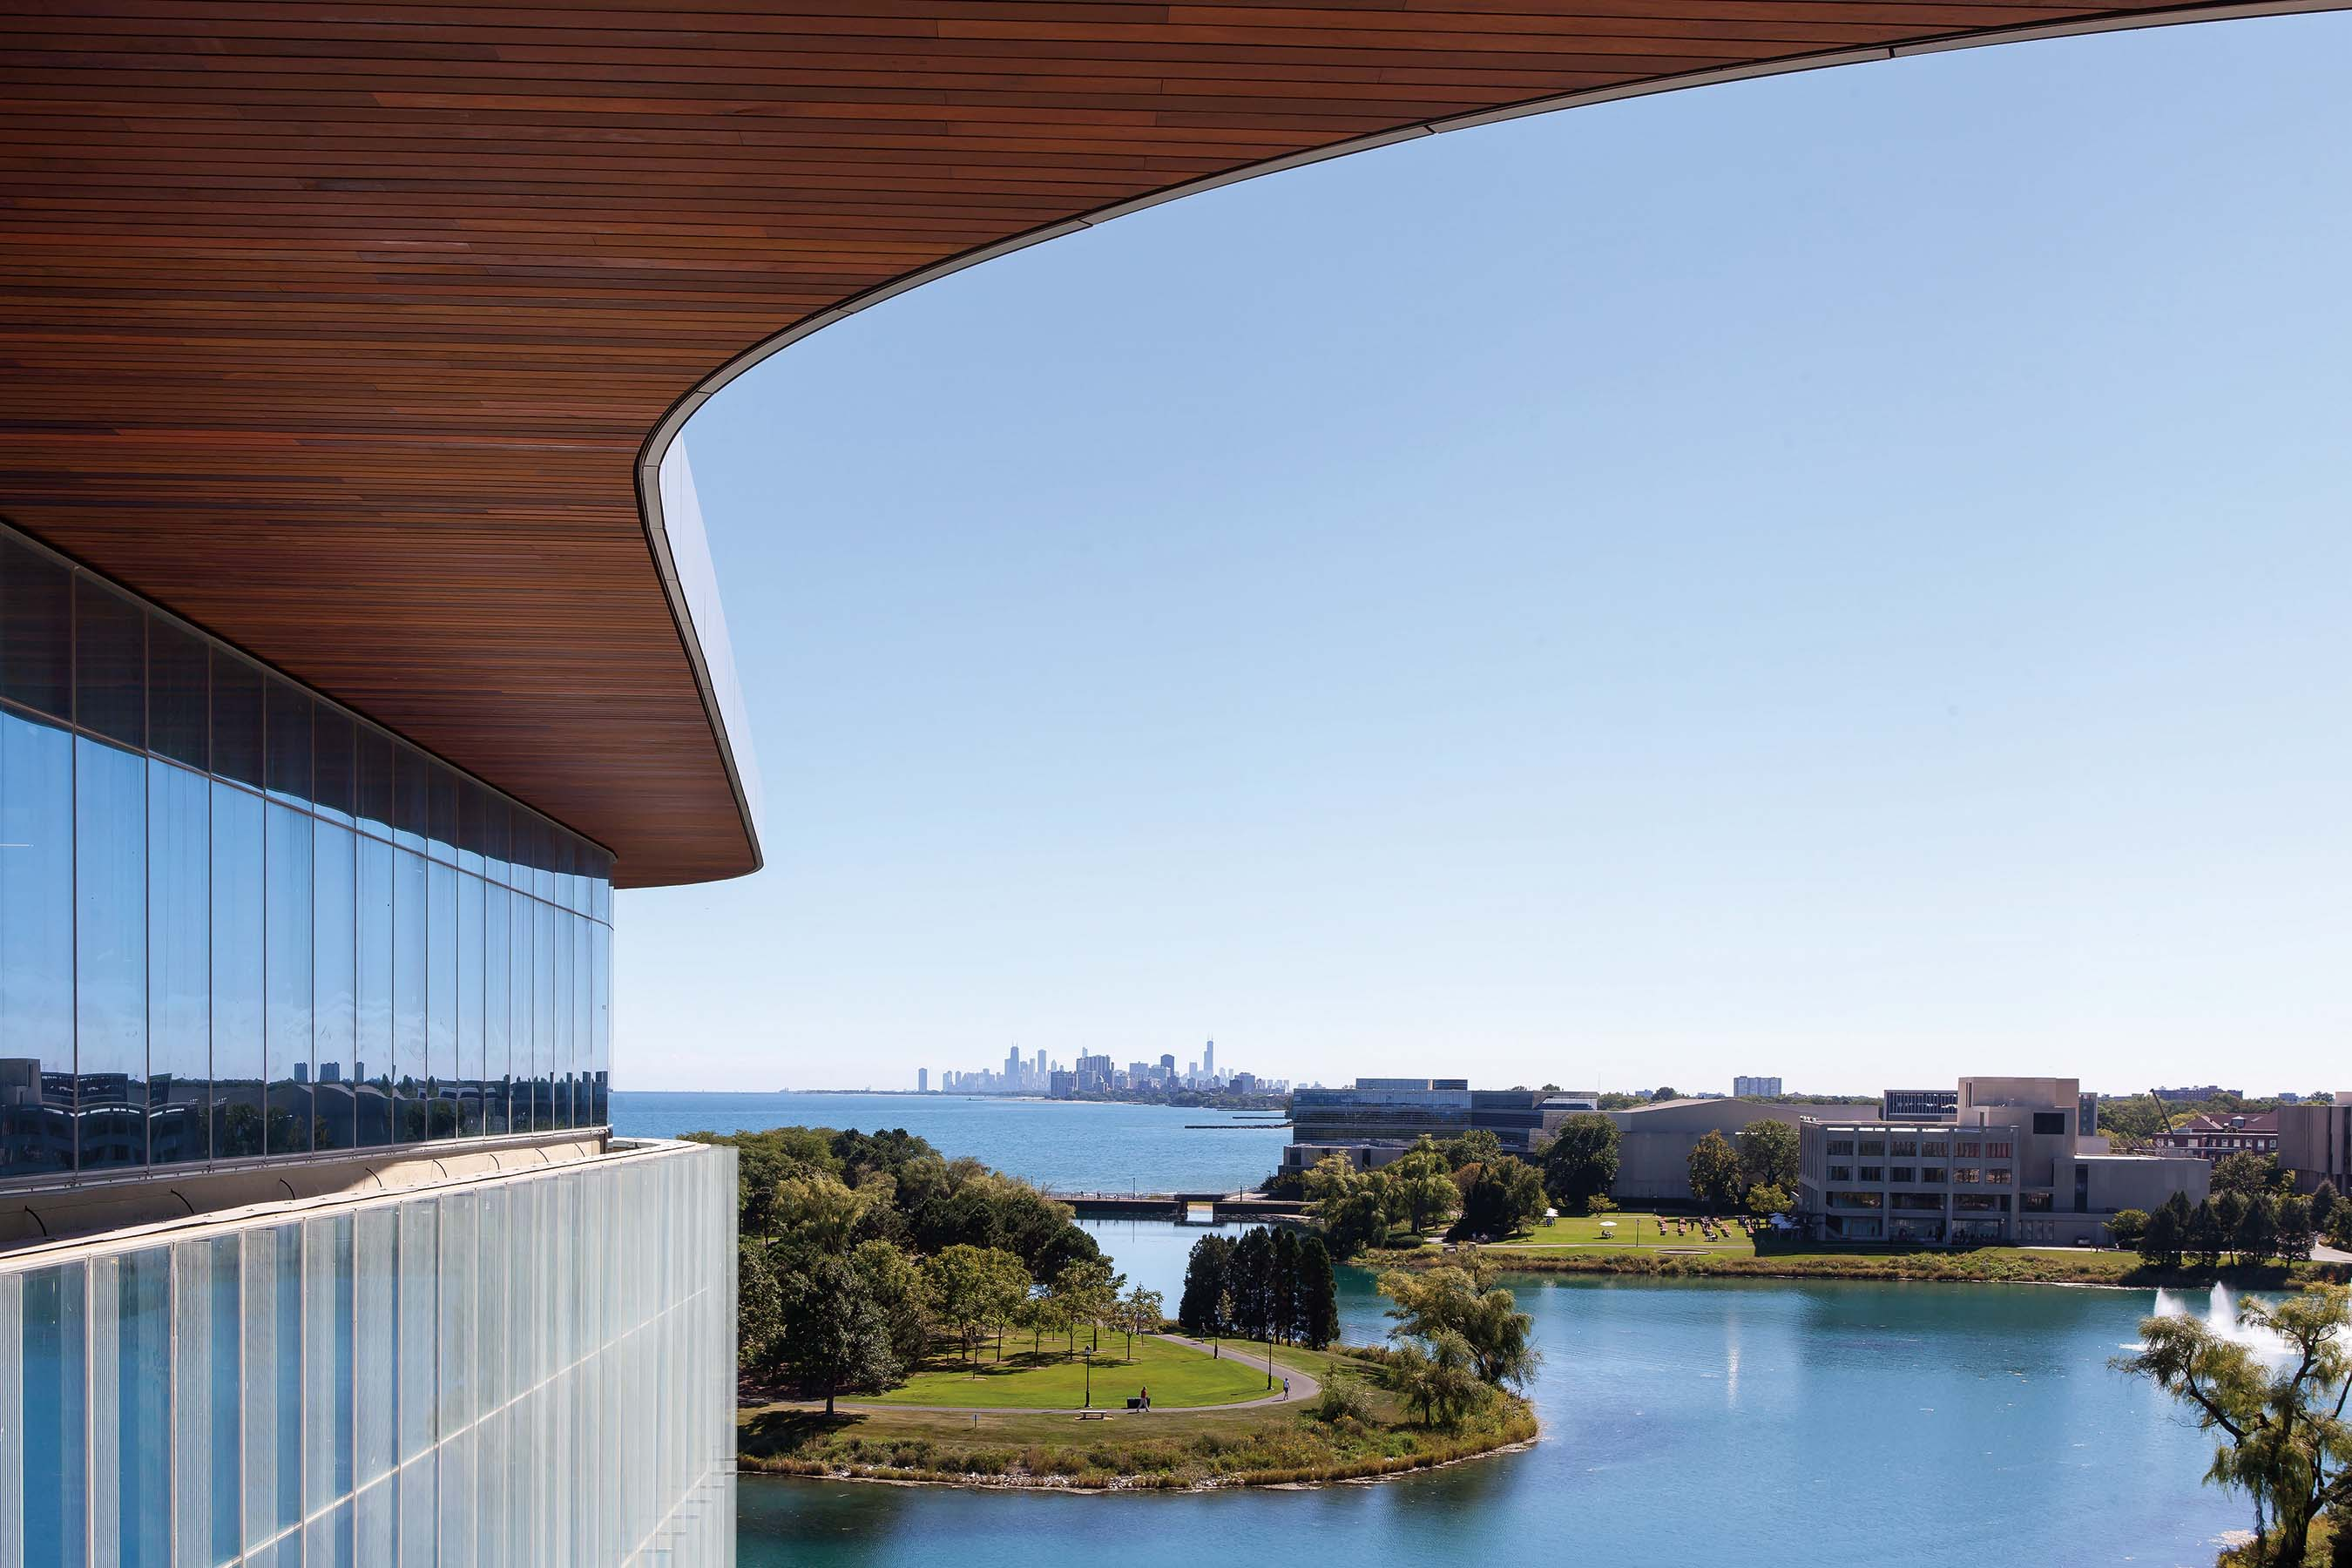 The building offers stunning views of Lake Michigan and the Chicago skyline.